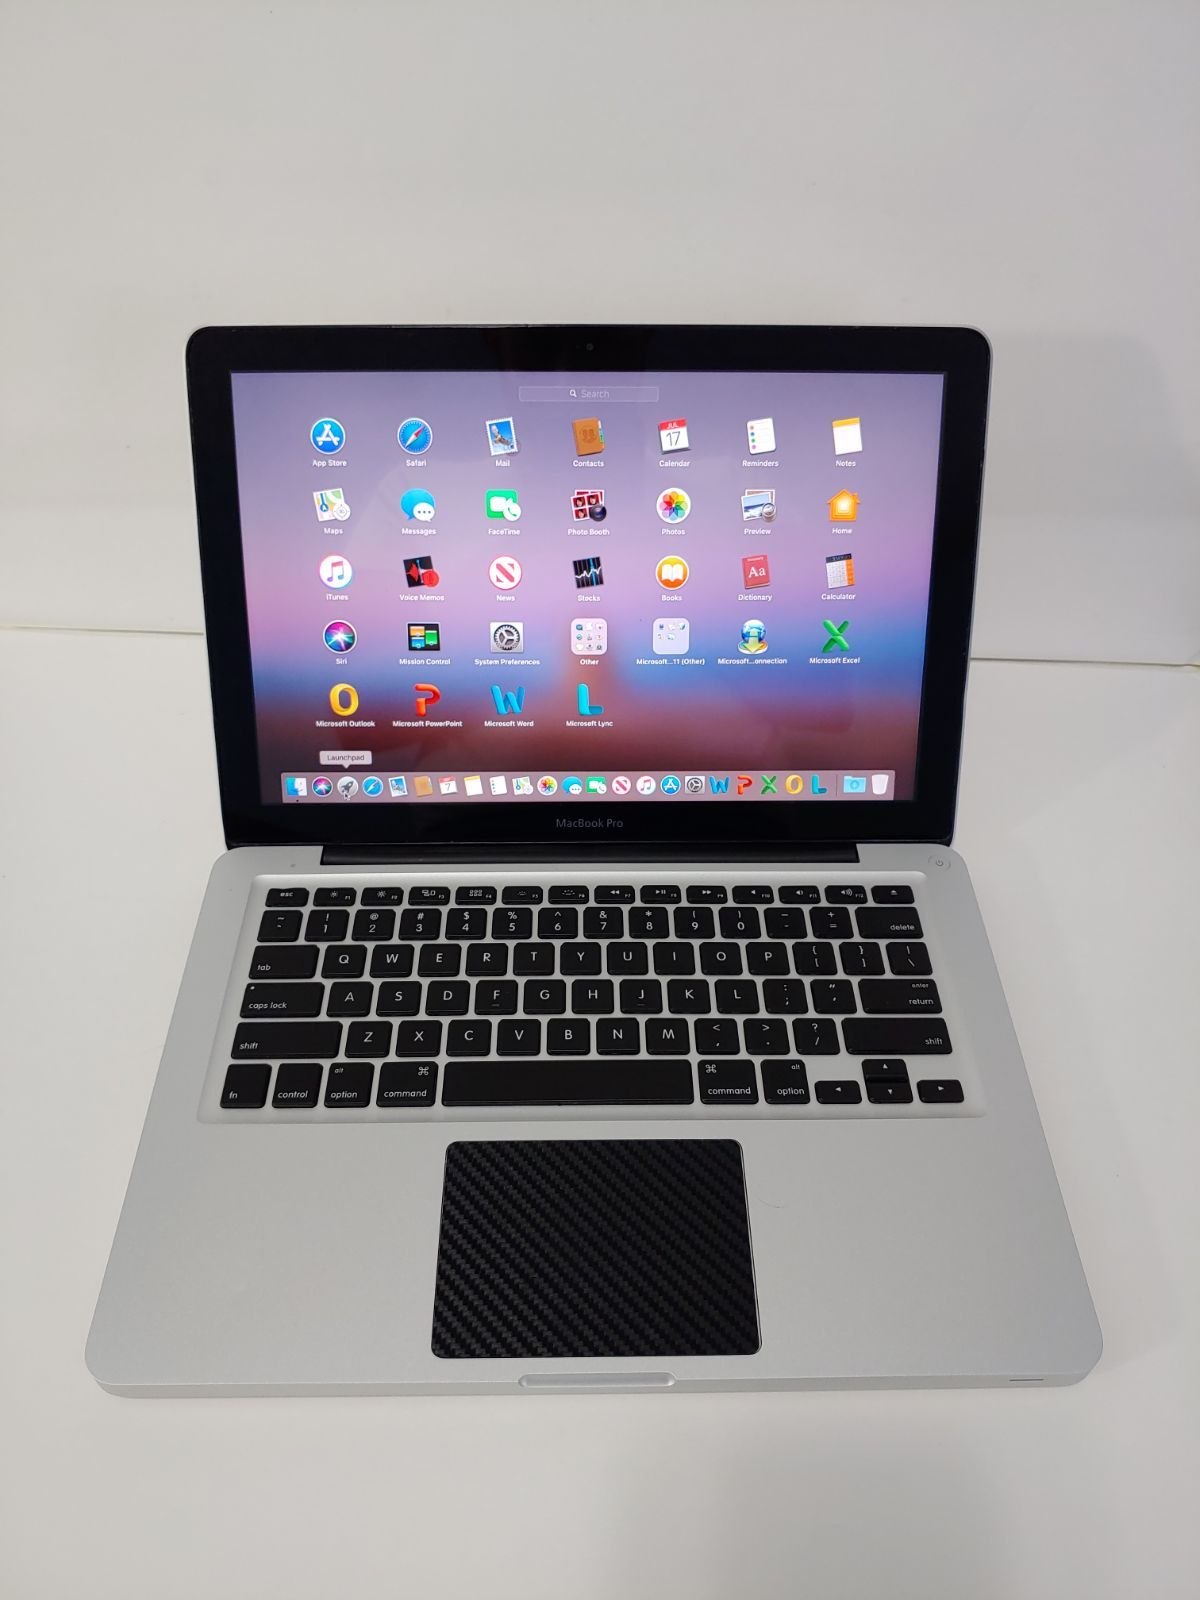 MacBook Pro 13 with i7 8GB and 256GB SSD Macbook pro 13